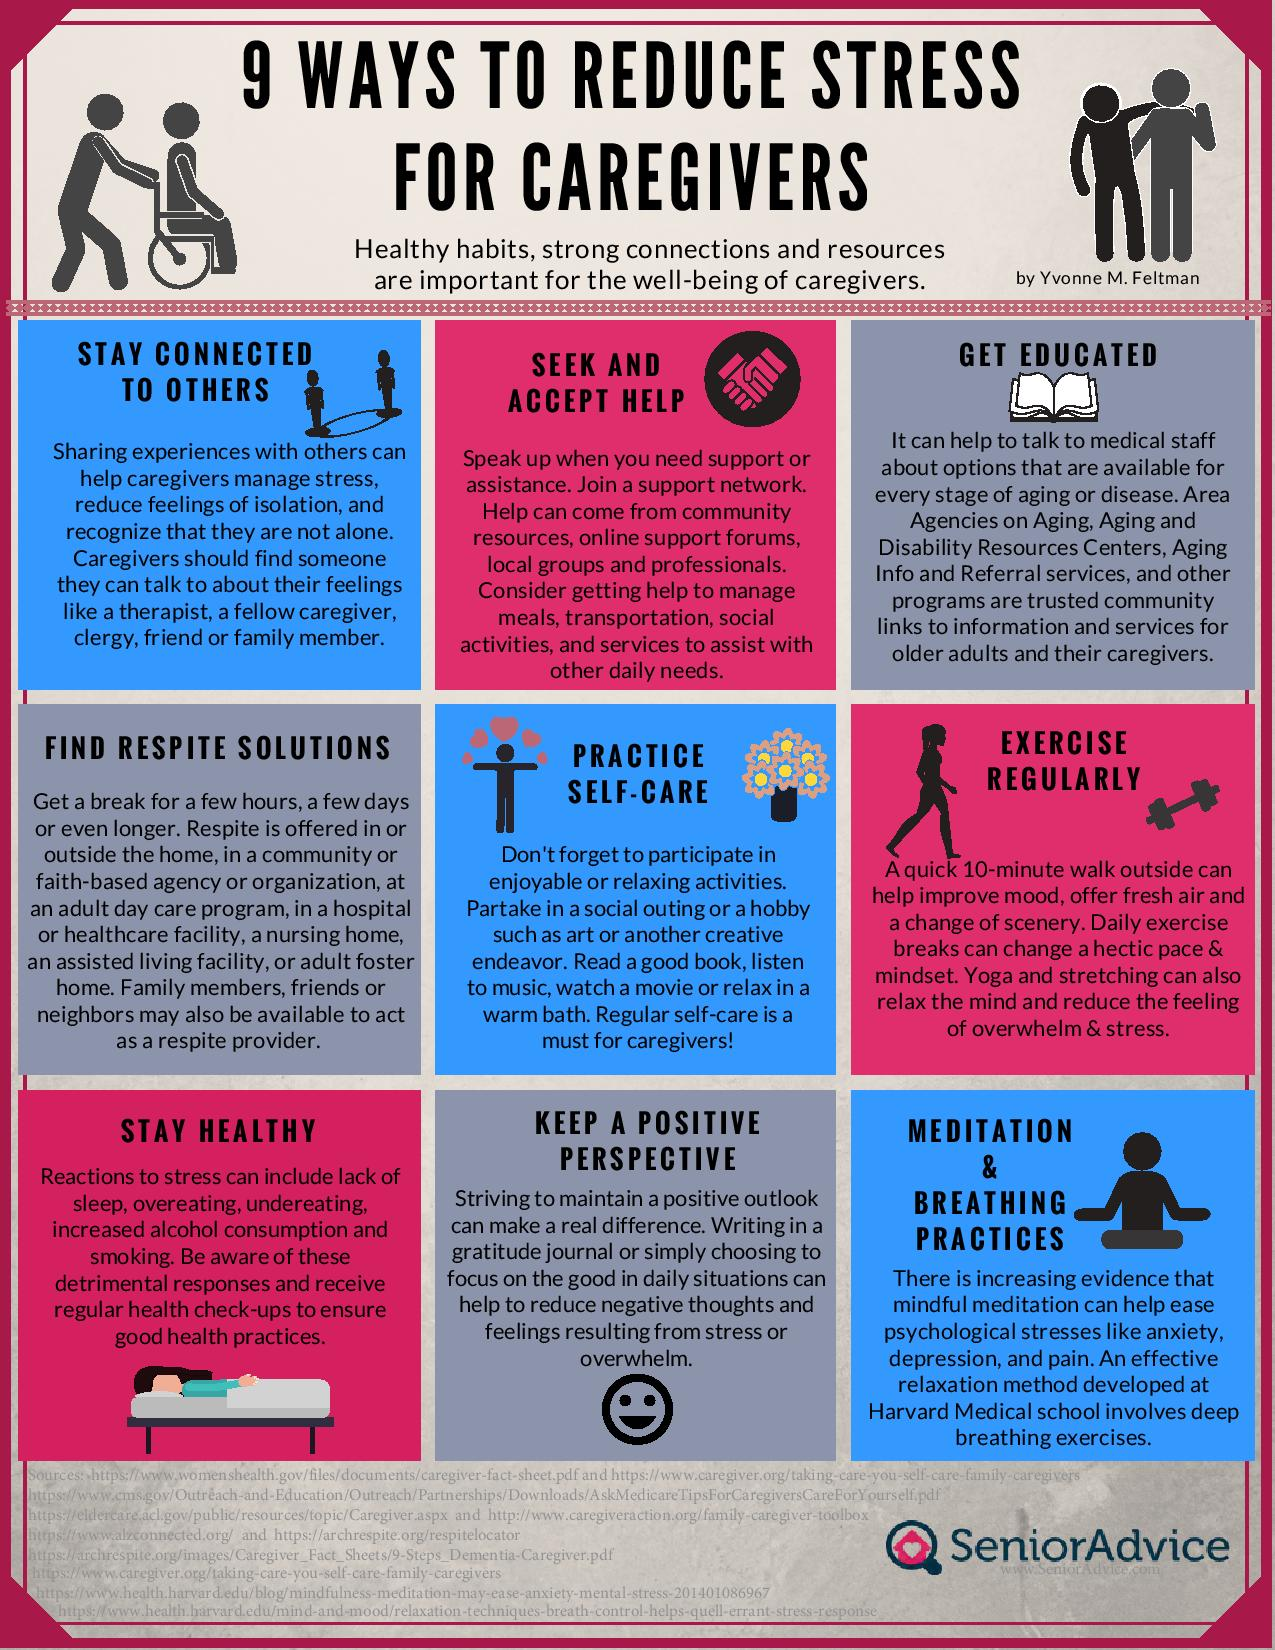 9 Ways to Reduce Caregiver Stress